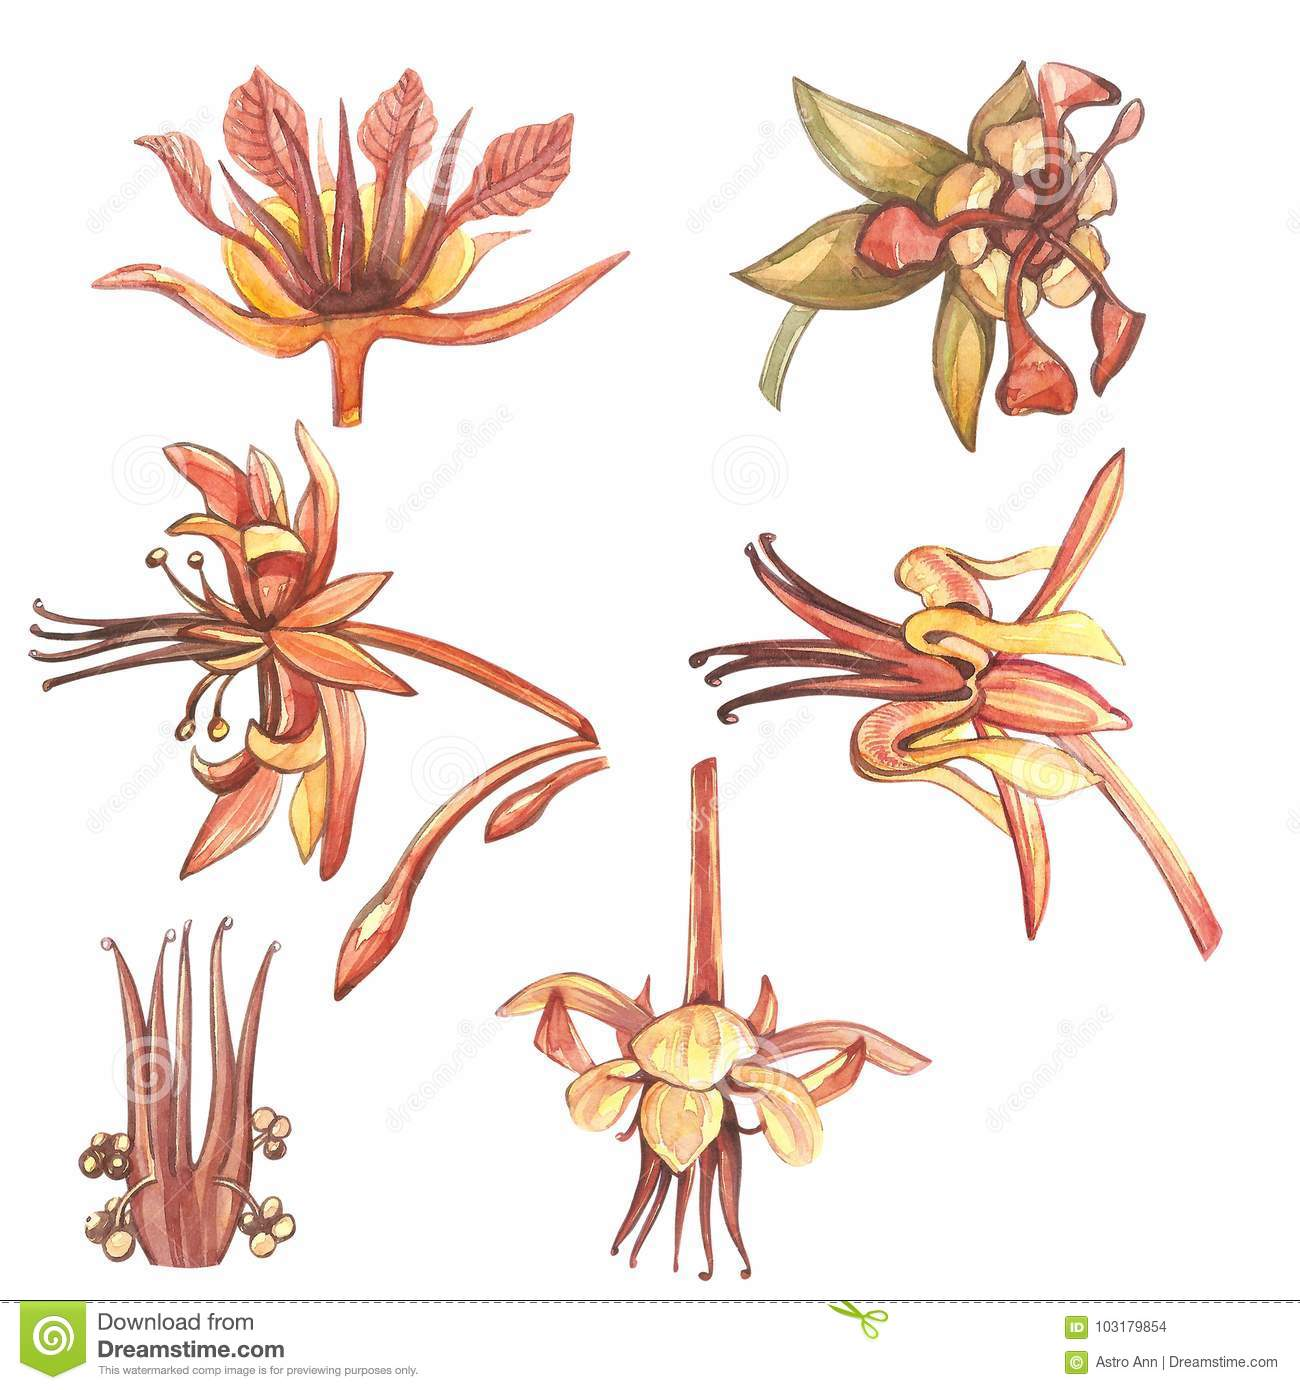 Set of botanical illustration. Watercolor cocoa flowers collection isolated on white background. Hand drawn exotic cacao